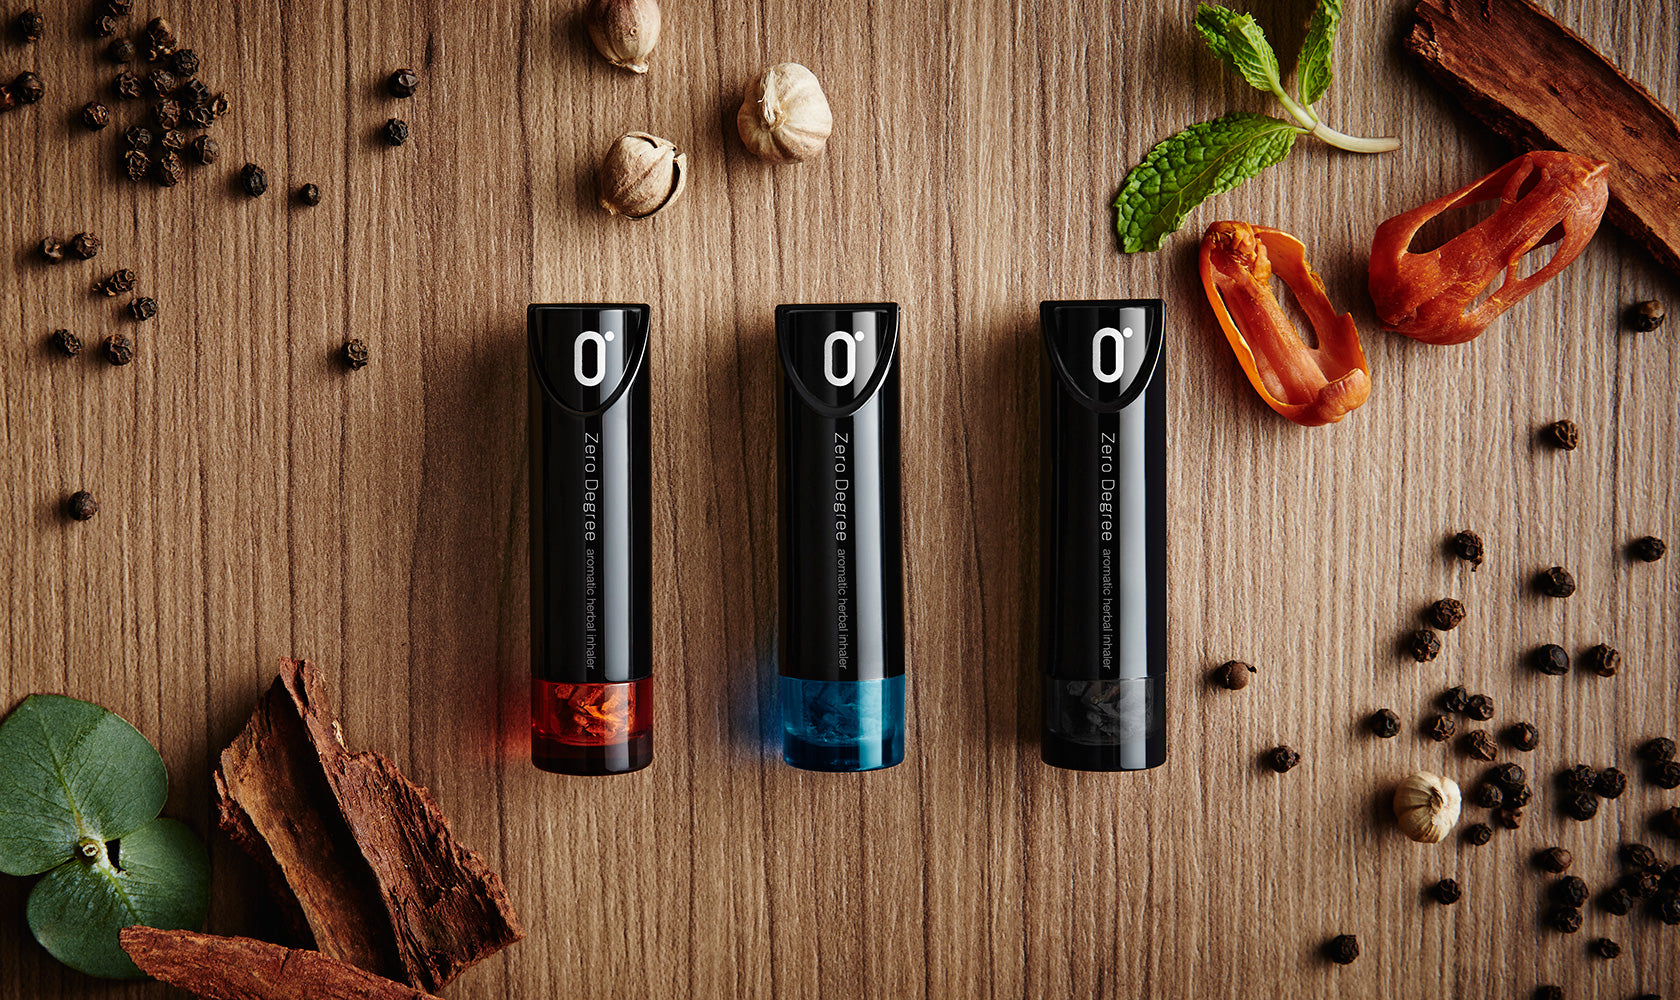 Zero Degree Aromatic Herbal Inhaler - iF Design Award Wining product